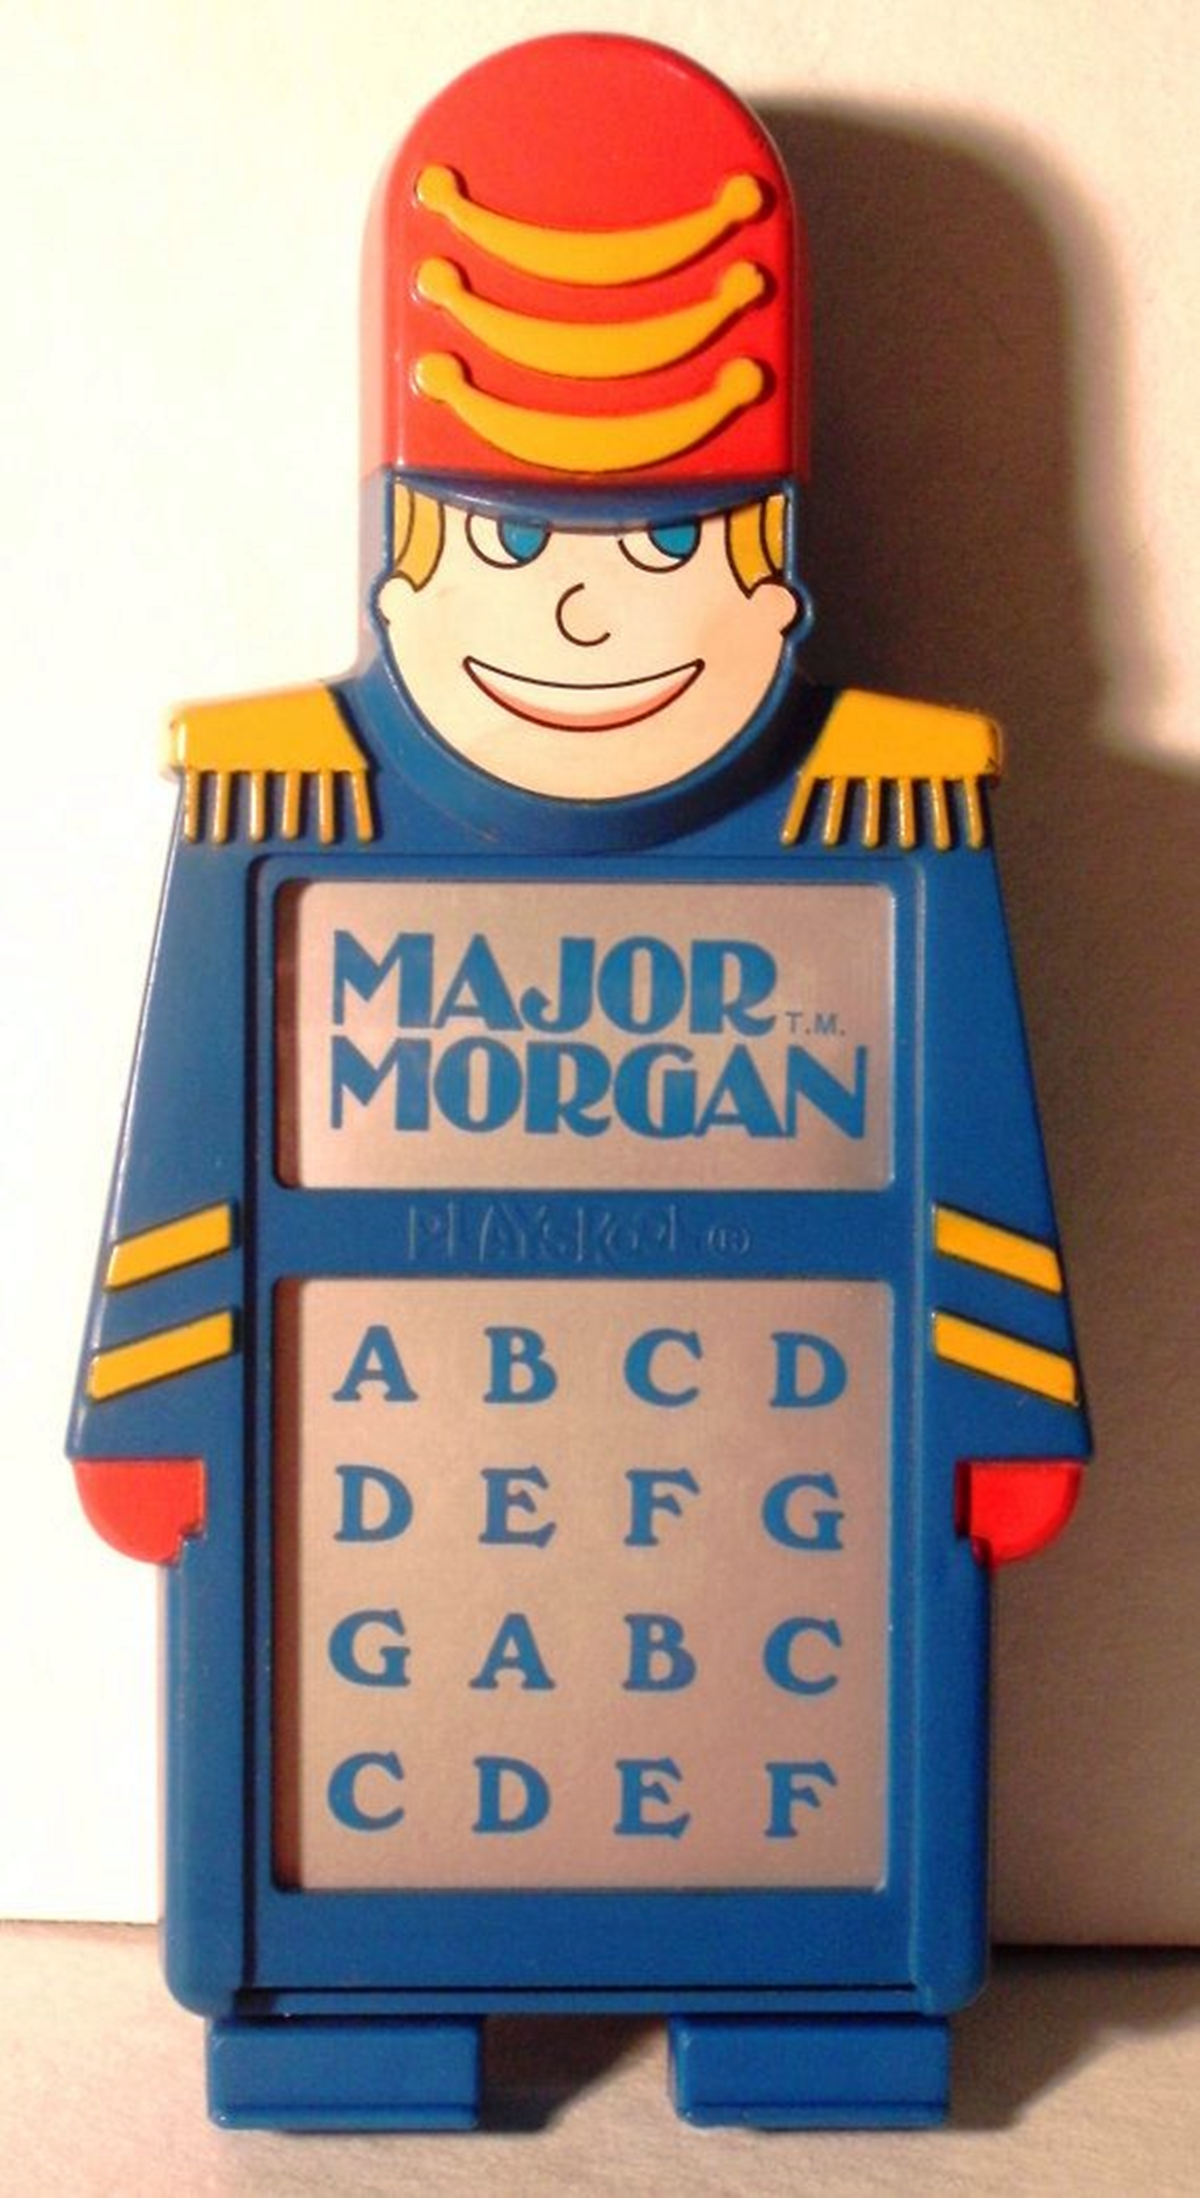 20 26 Toys From Your Childhood We Bet You've Forgotten About